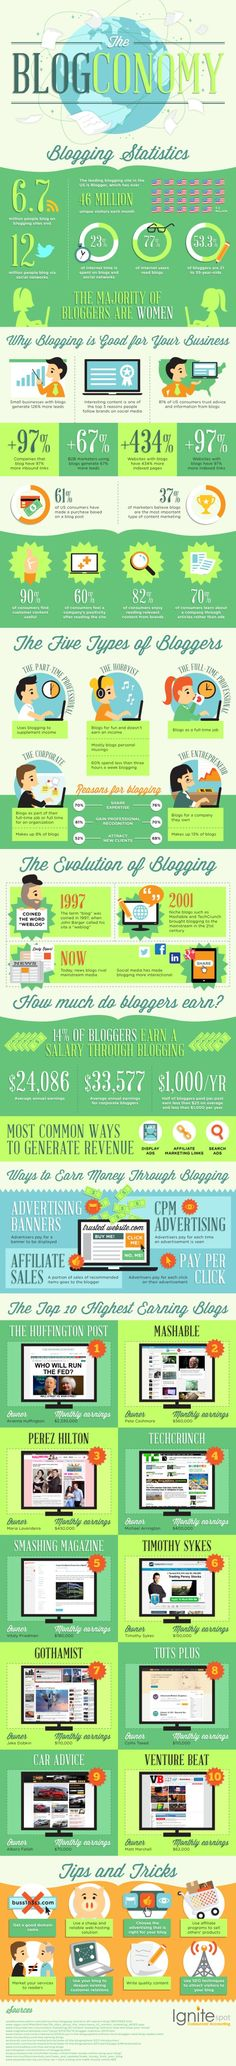 Blogging Statistics for Marketers - 61% of consumers have made a purchase based on a blog post & 70% of consumers learn about a company through articles rather than ads, but only 37% of marketers believe blogs are the most important type of content marketing. #infographic #marketing #blogging